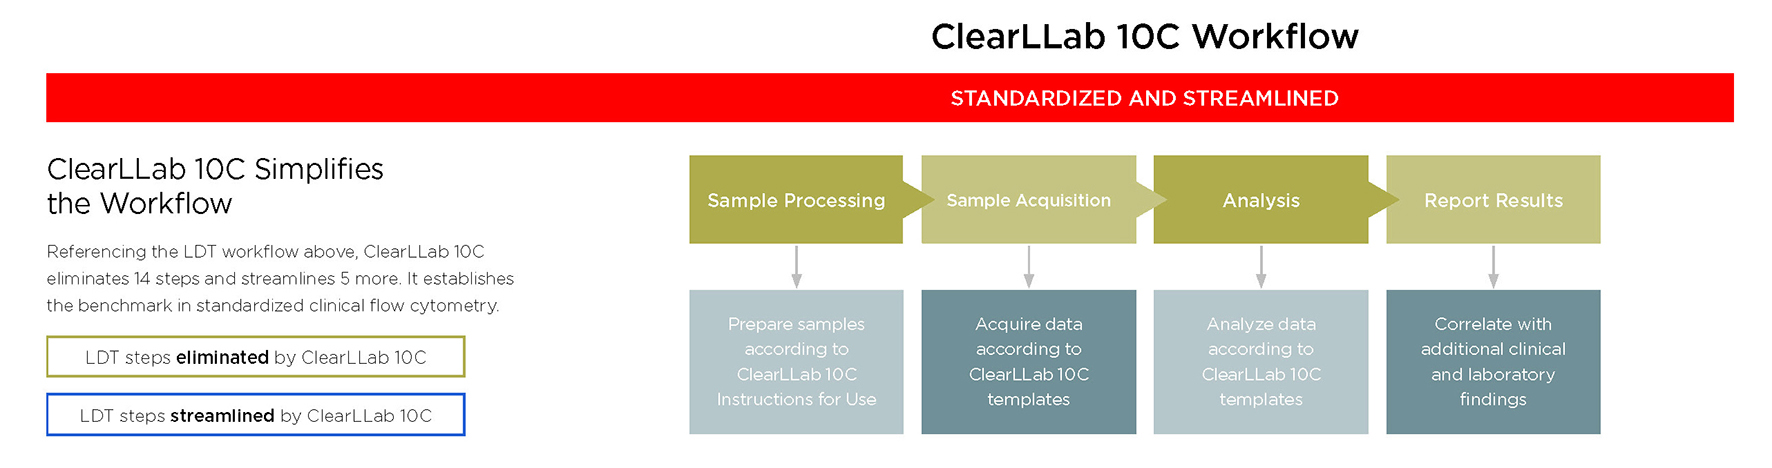 ClearLLab 10C Workflow